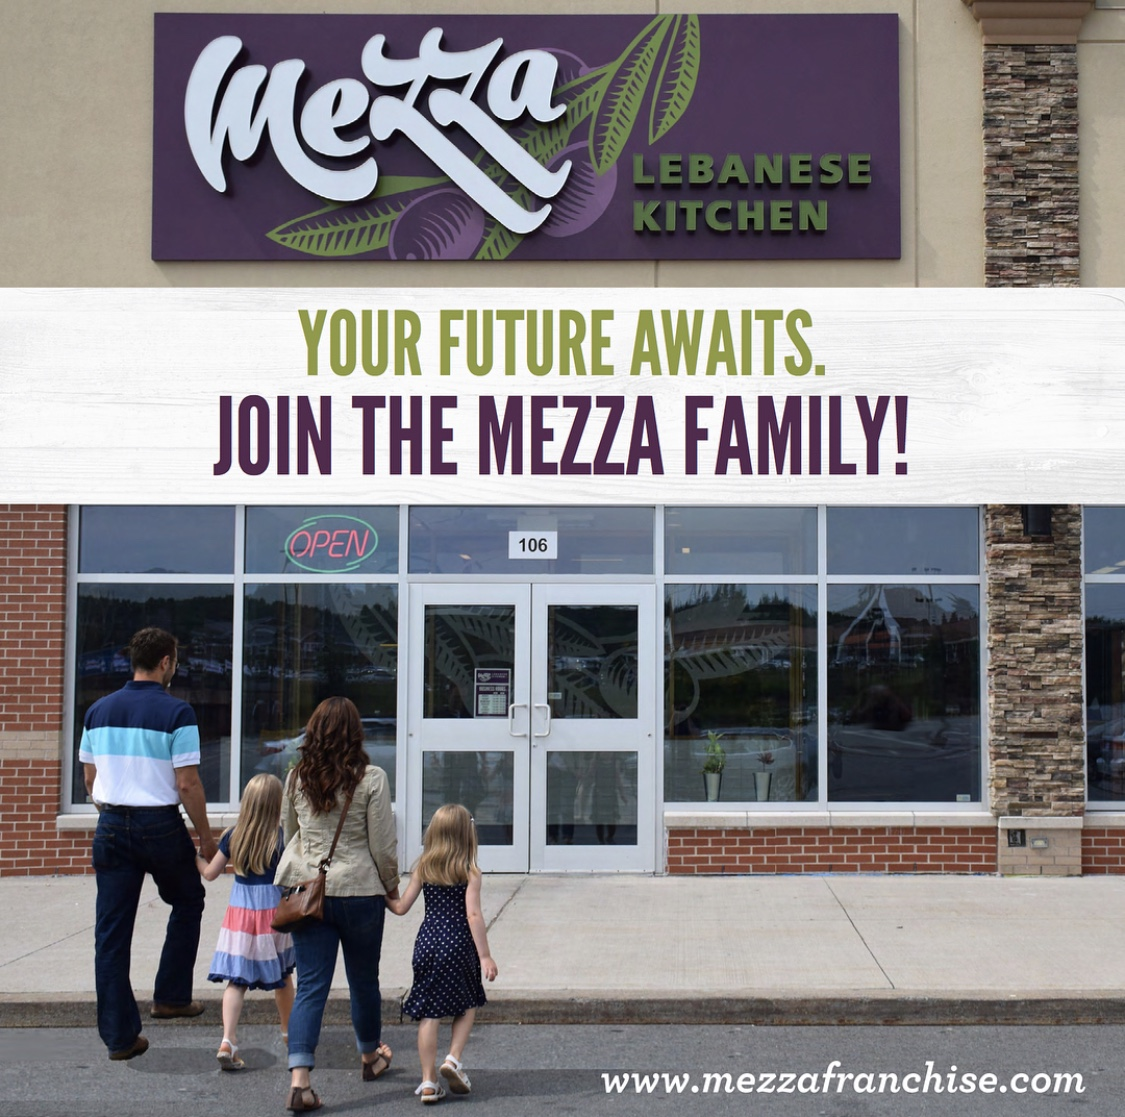 Mezza franchise